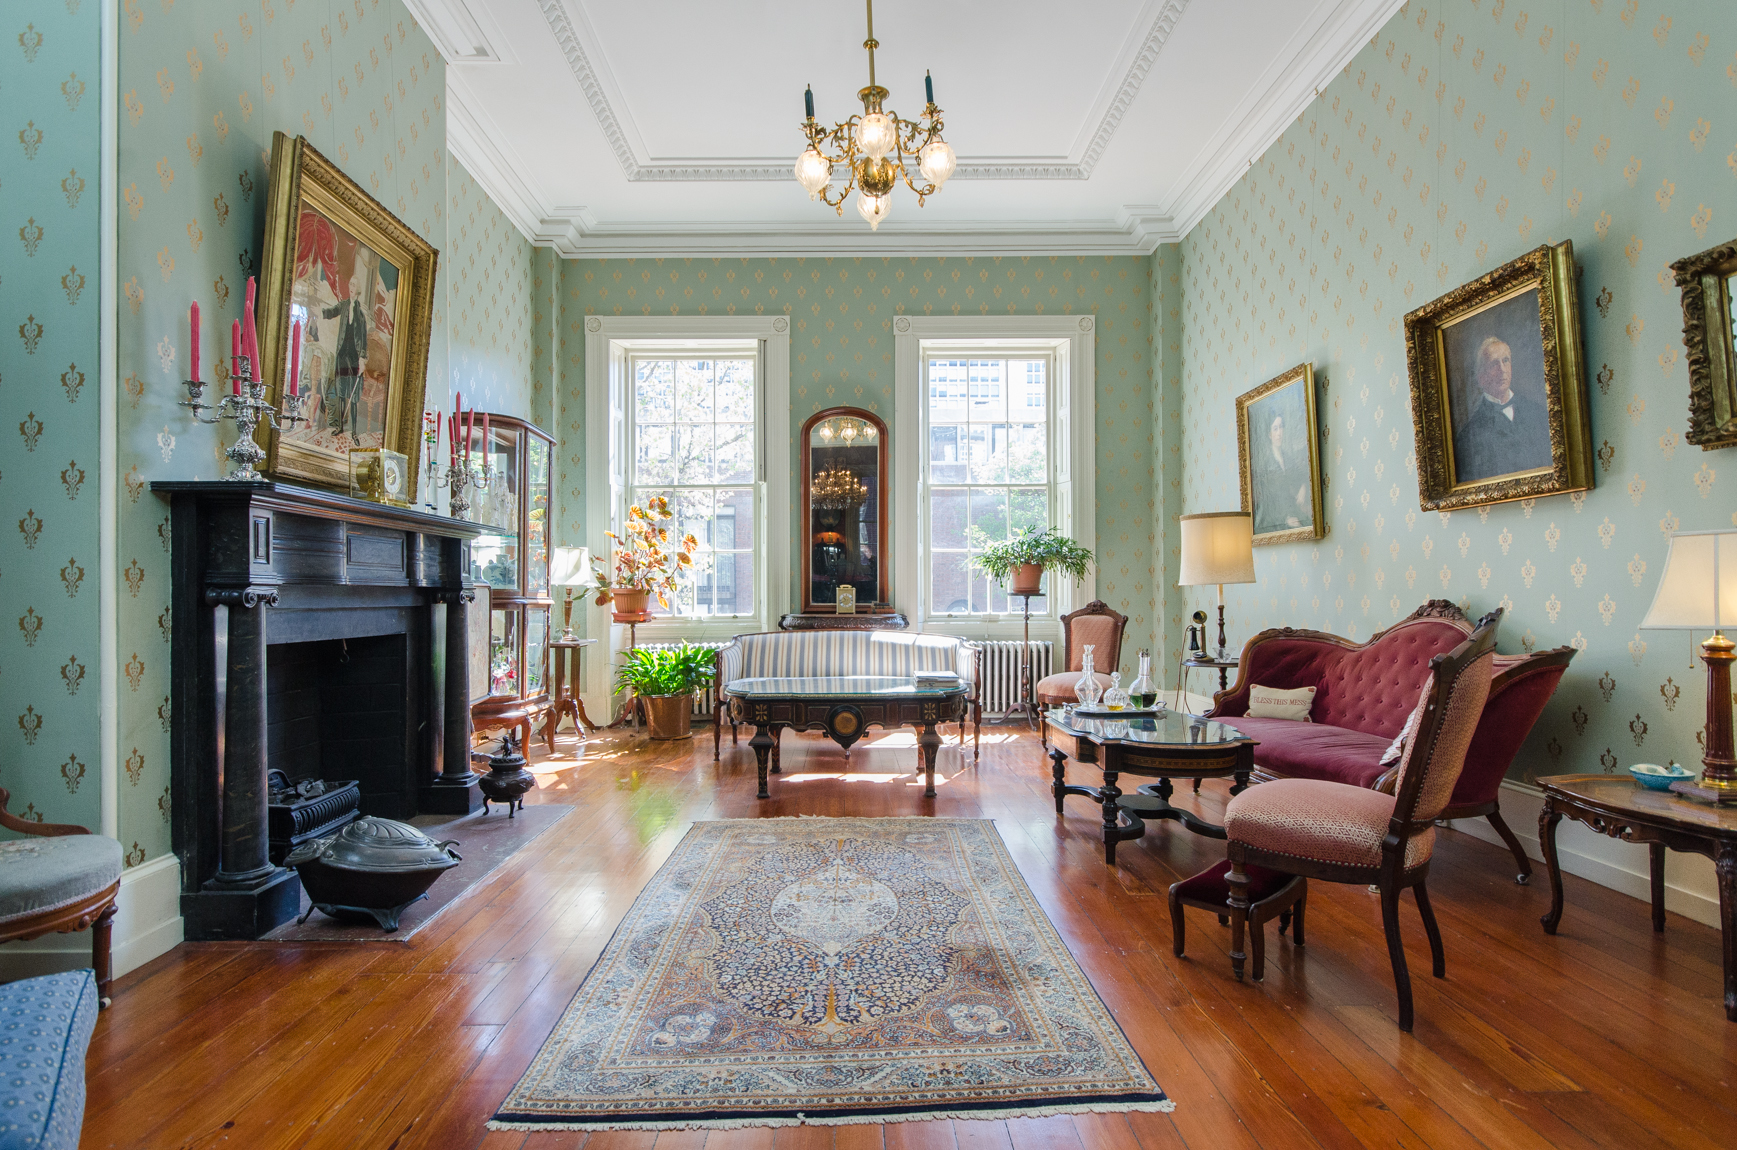 Historic John Penn House In Society Hill Re Lists For $2.45M   Curbed Philly